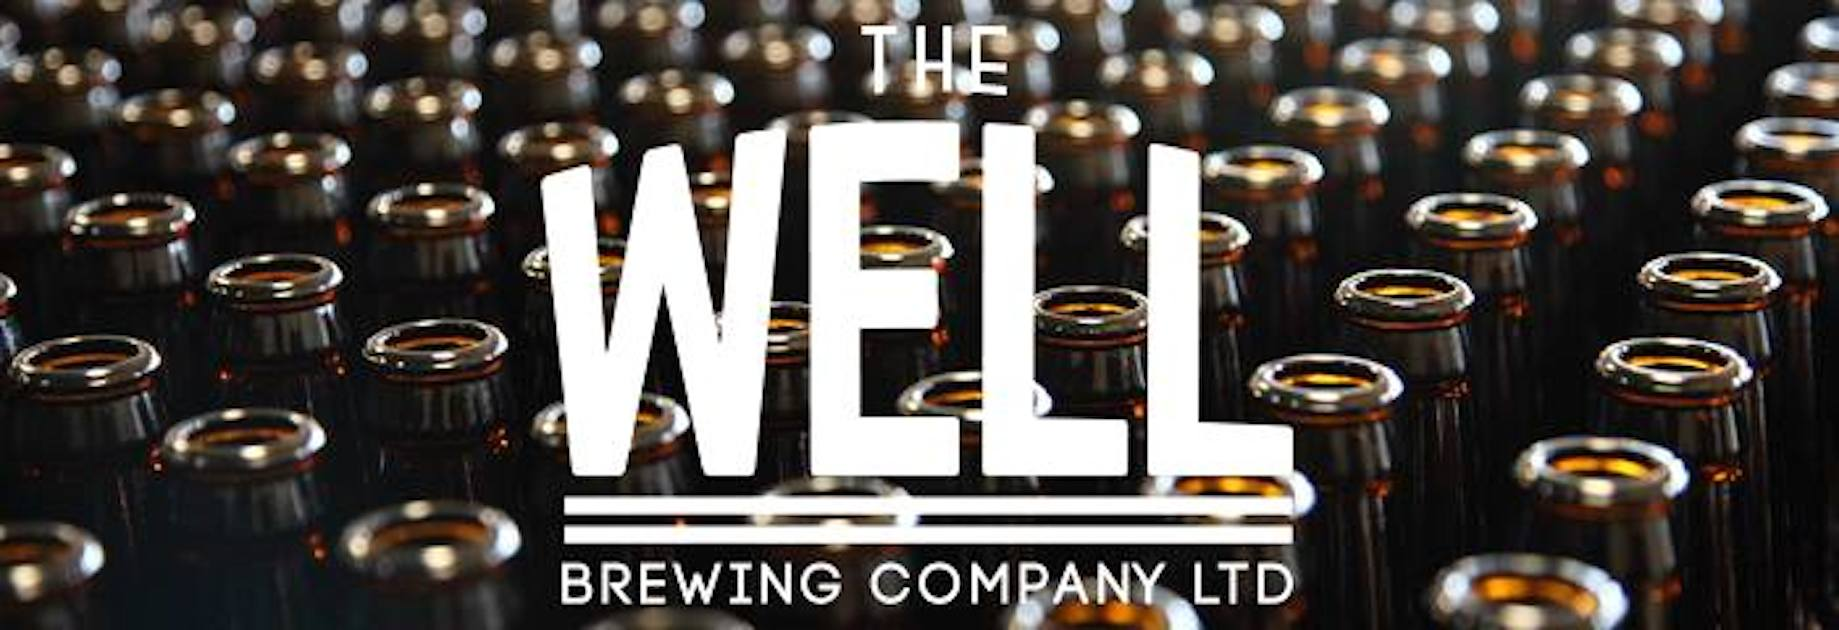 The Well Beer Image